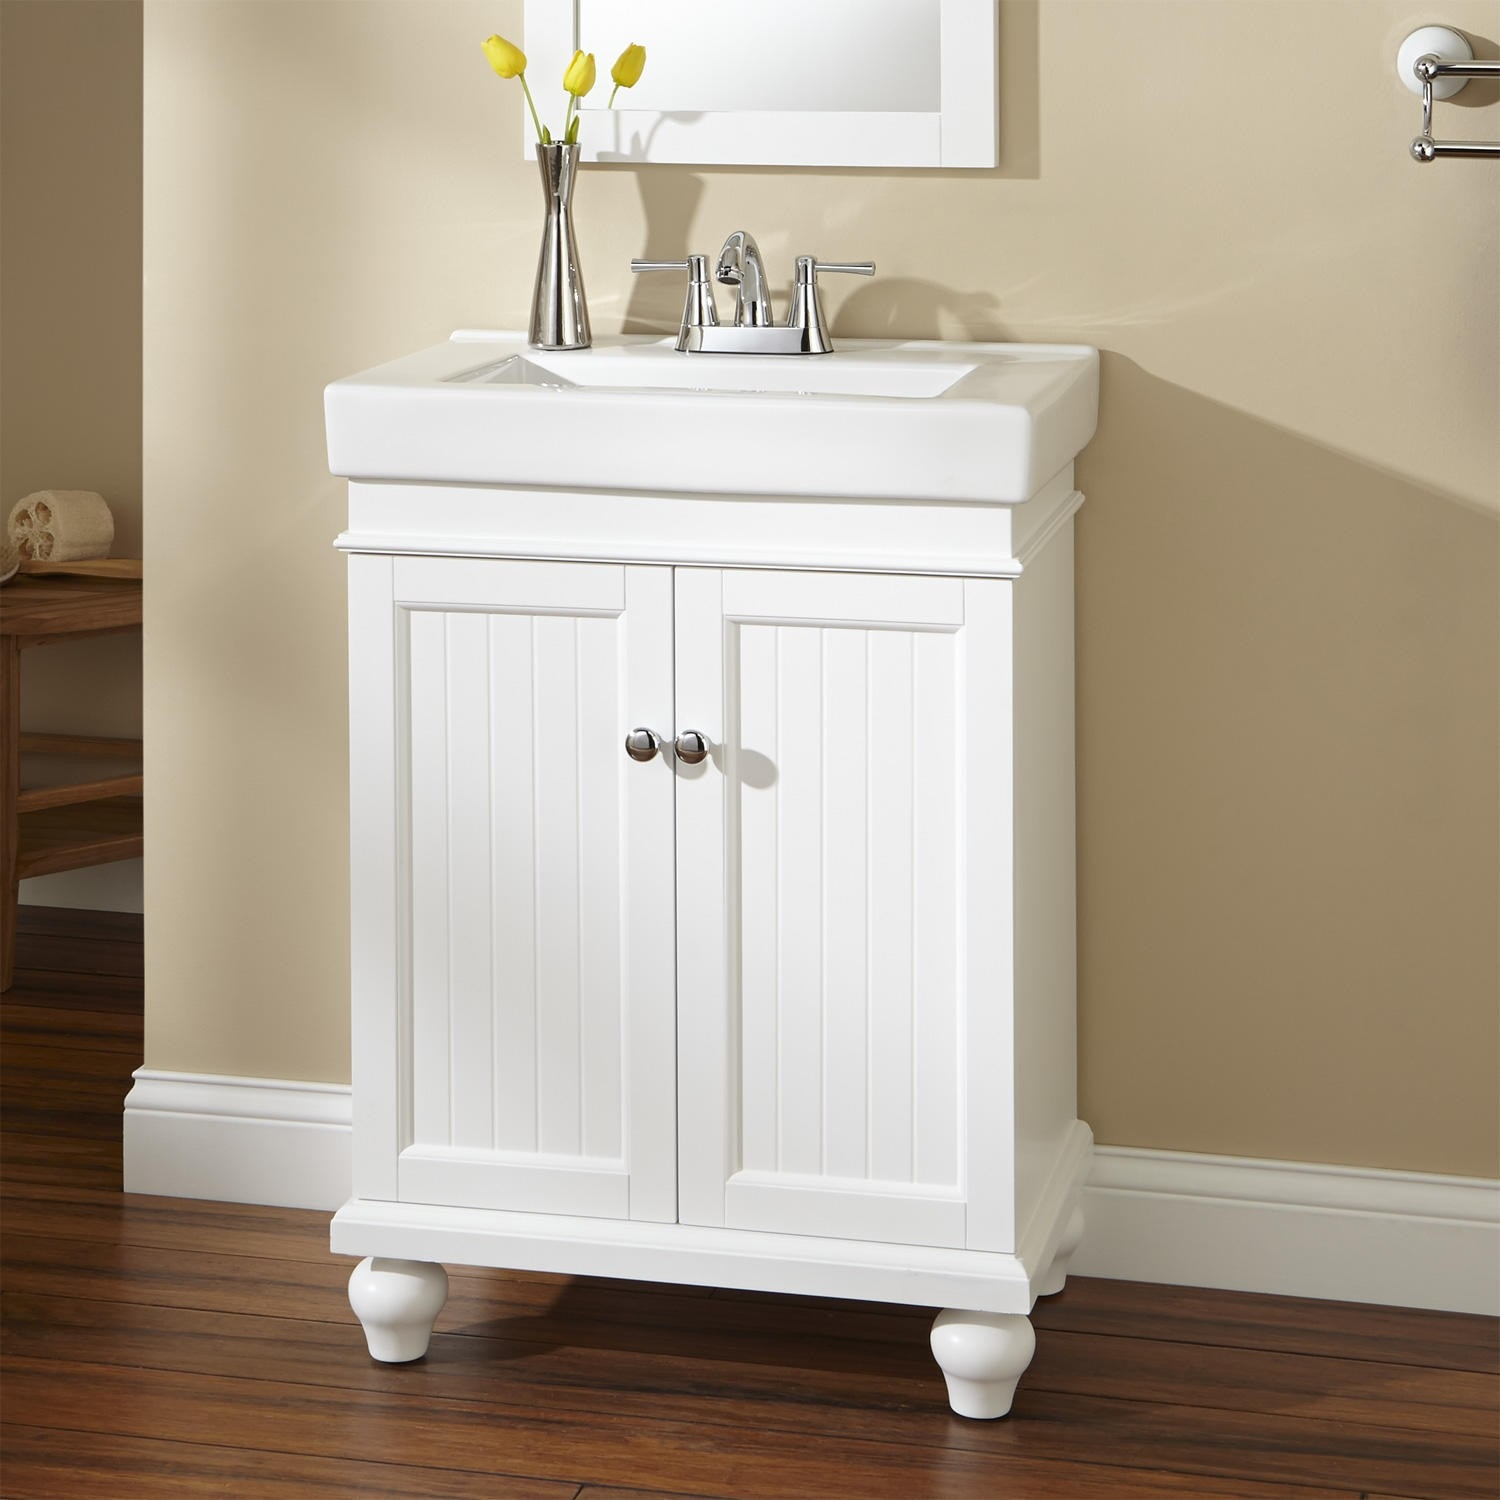 Permalink to 18 Inch Bathroom Vanity Cabinet